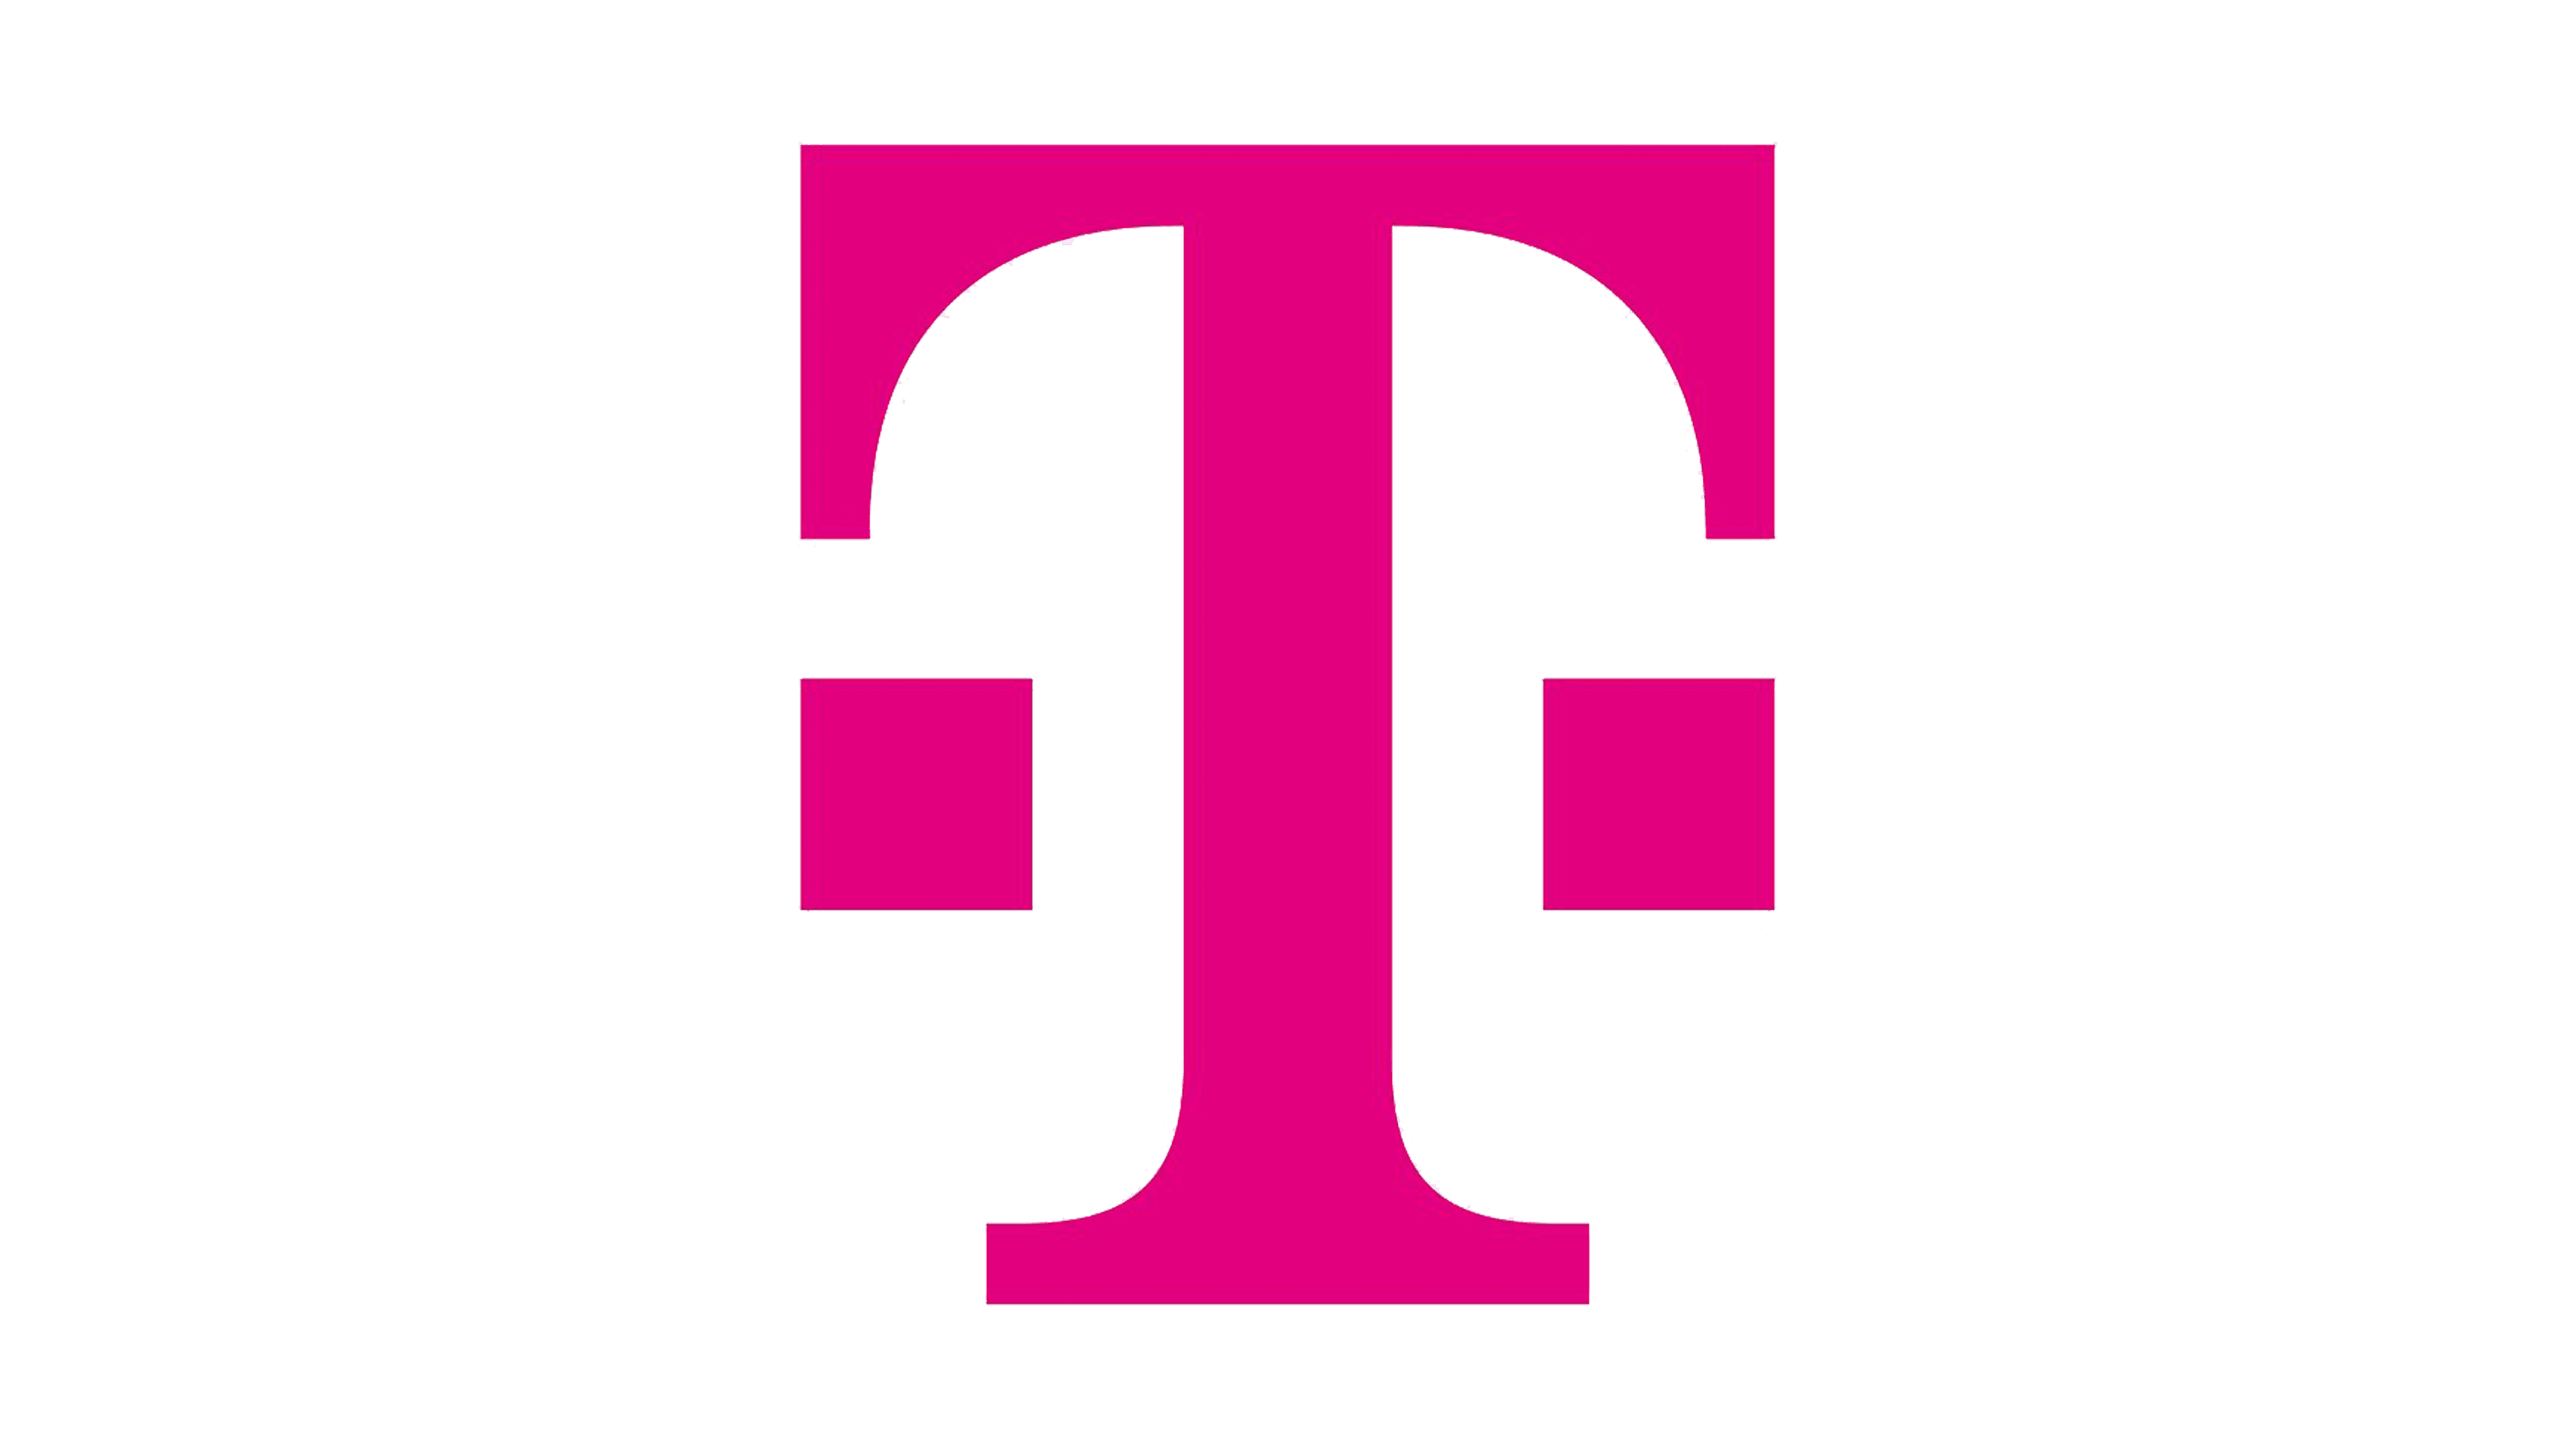 Deutsche Telekom Logo And Symbol Meaning History Png